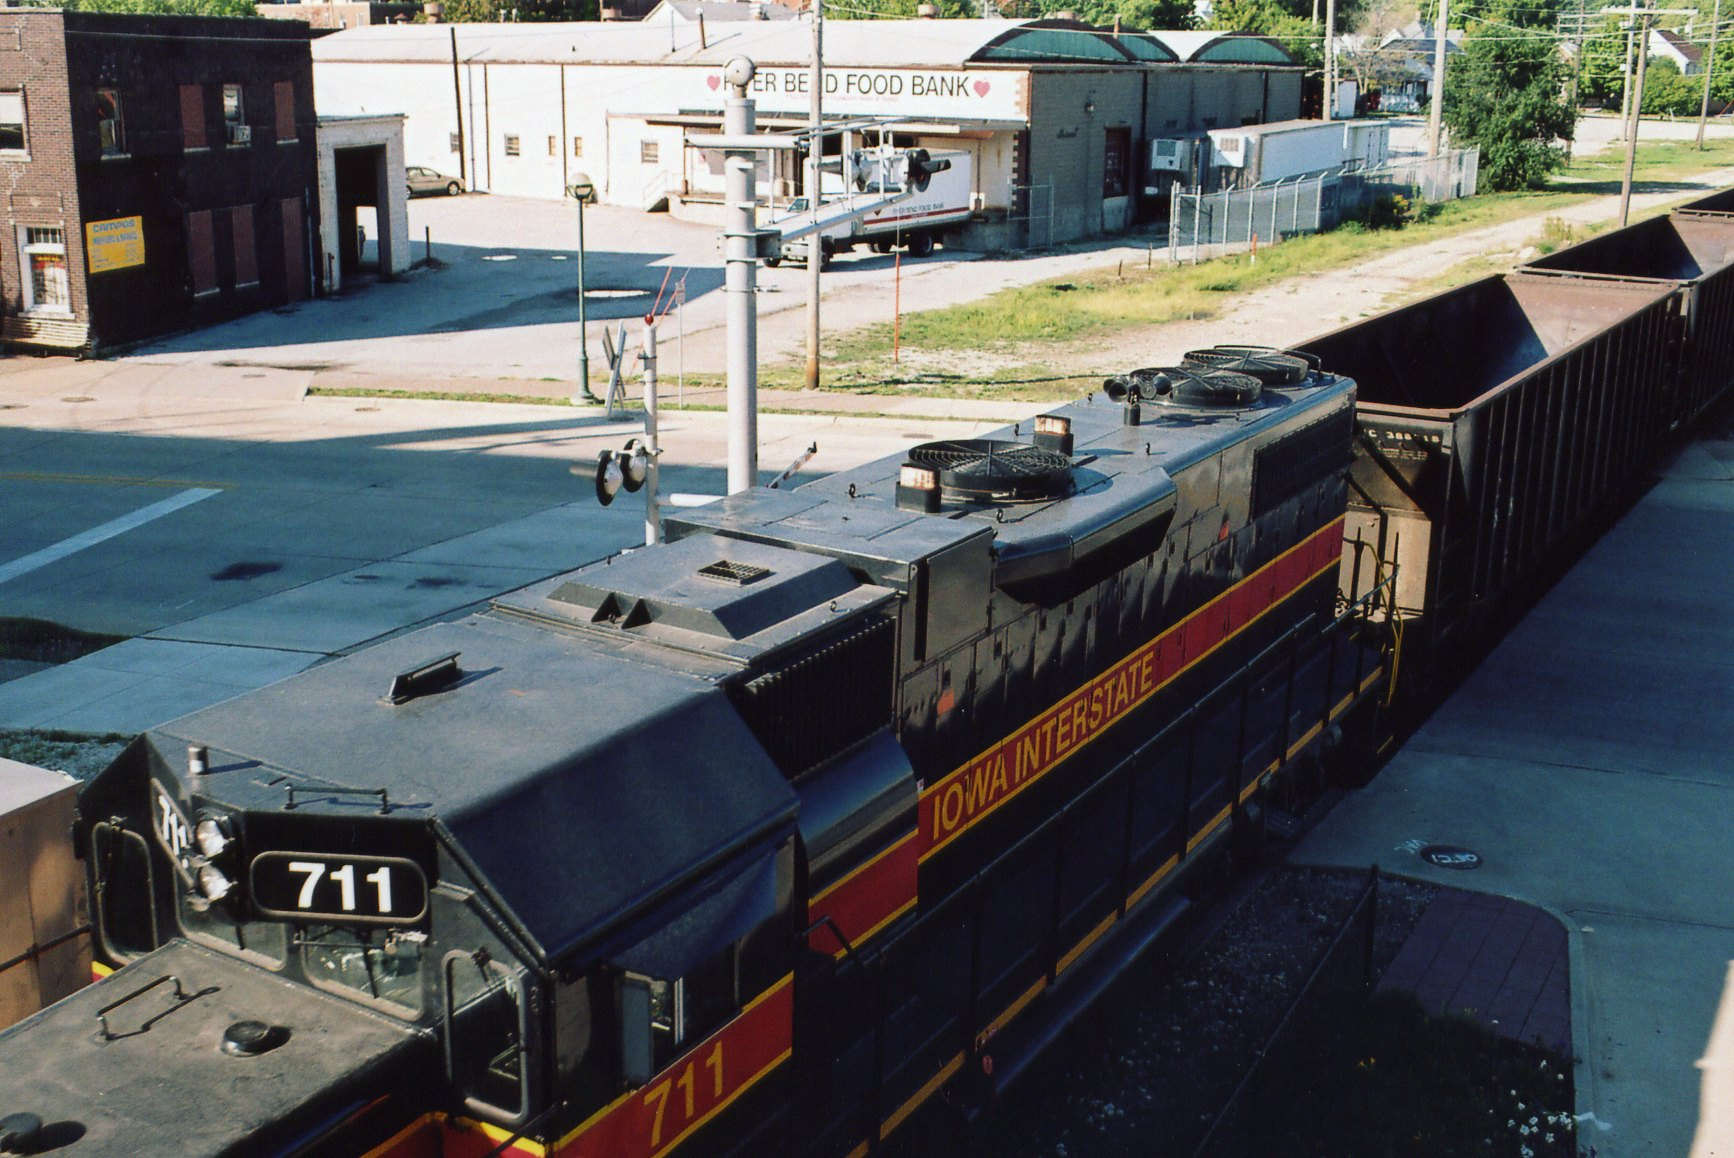 IAIS 711 at Rock Island, IL on 14-Sep-2005